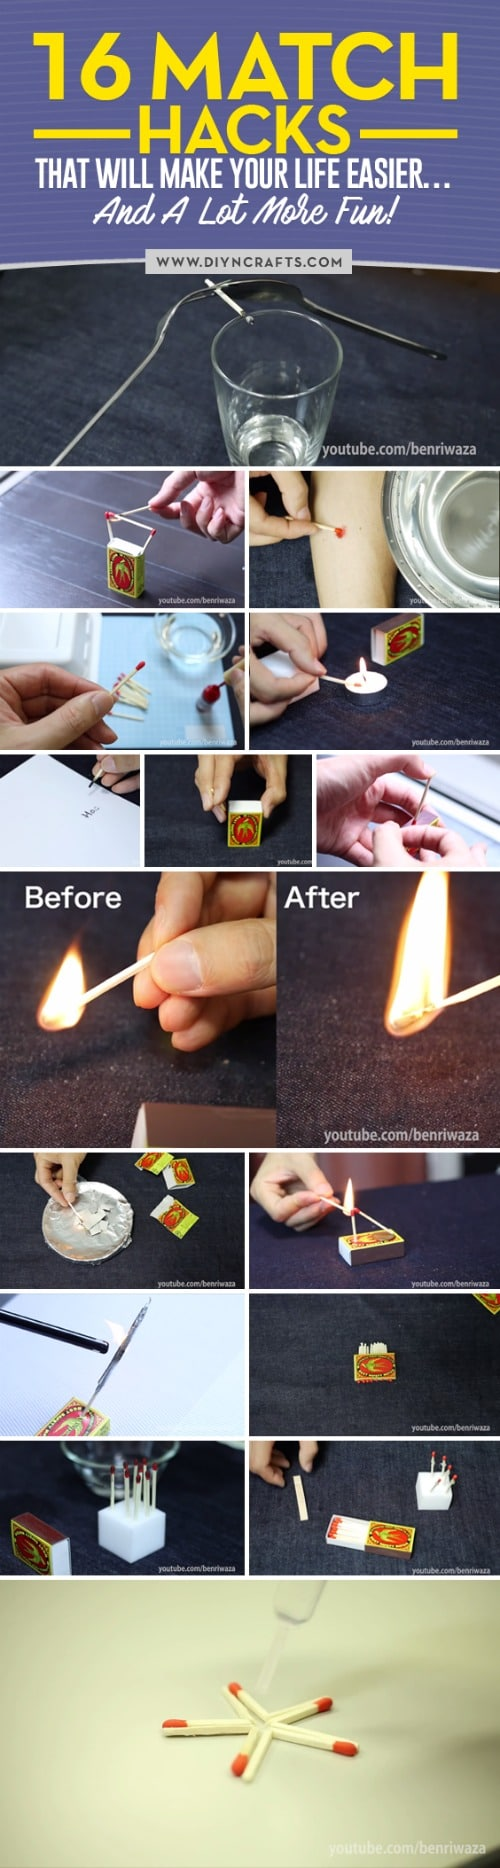 16 Match Hacks That Will Make Your Life Easier… And A Lot More Fun!